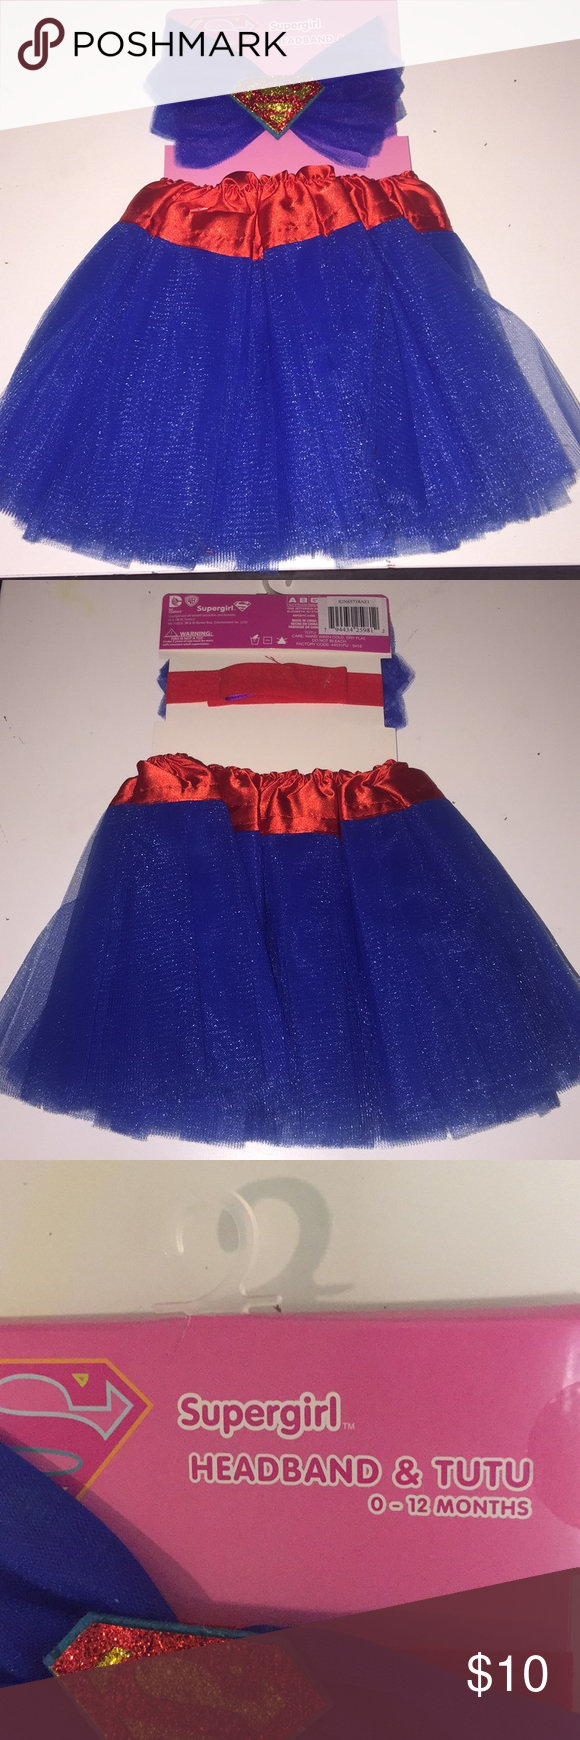 ️SUPERGIRL Outfit 🔵♥️ NWT (With images) Party city